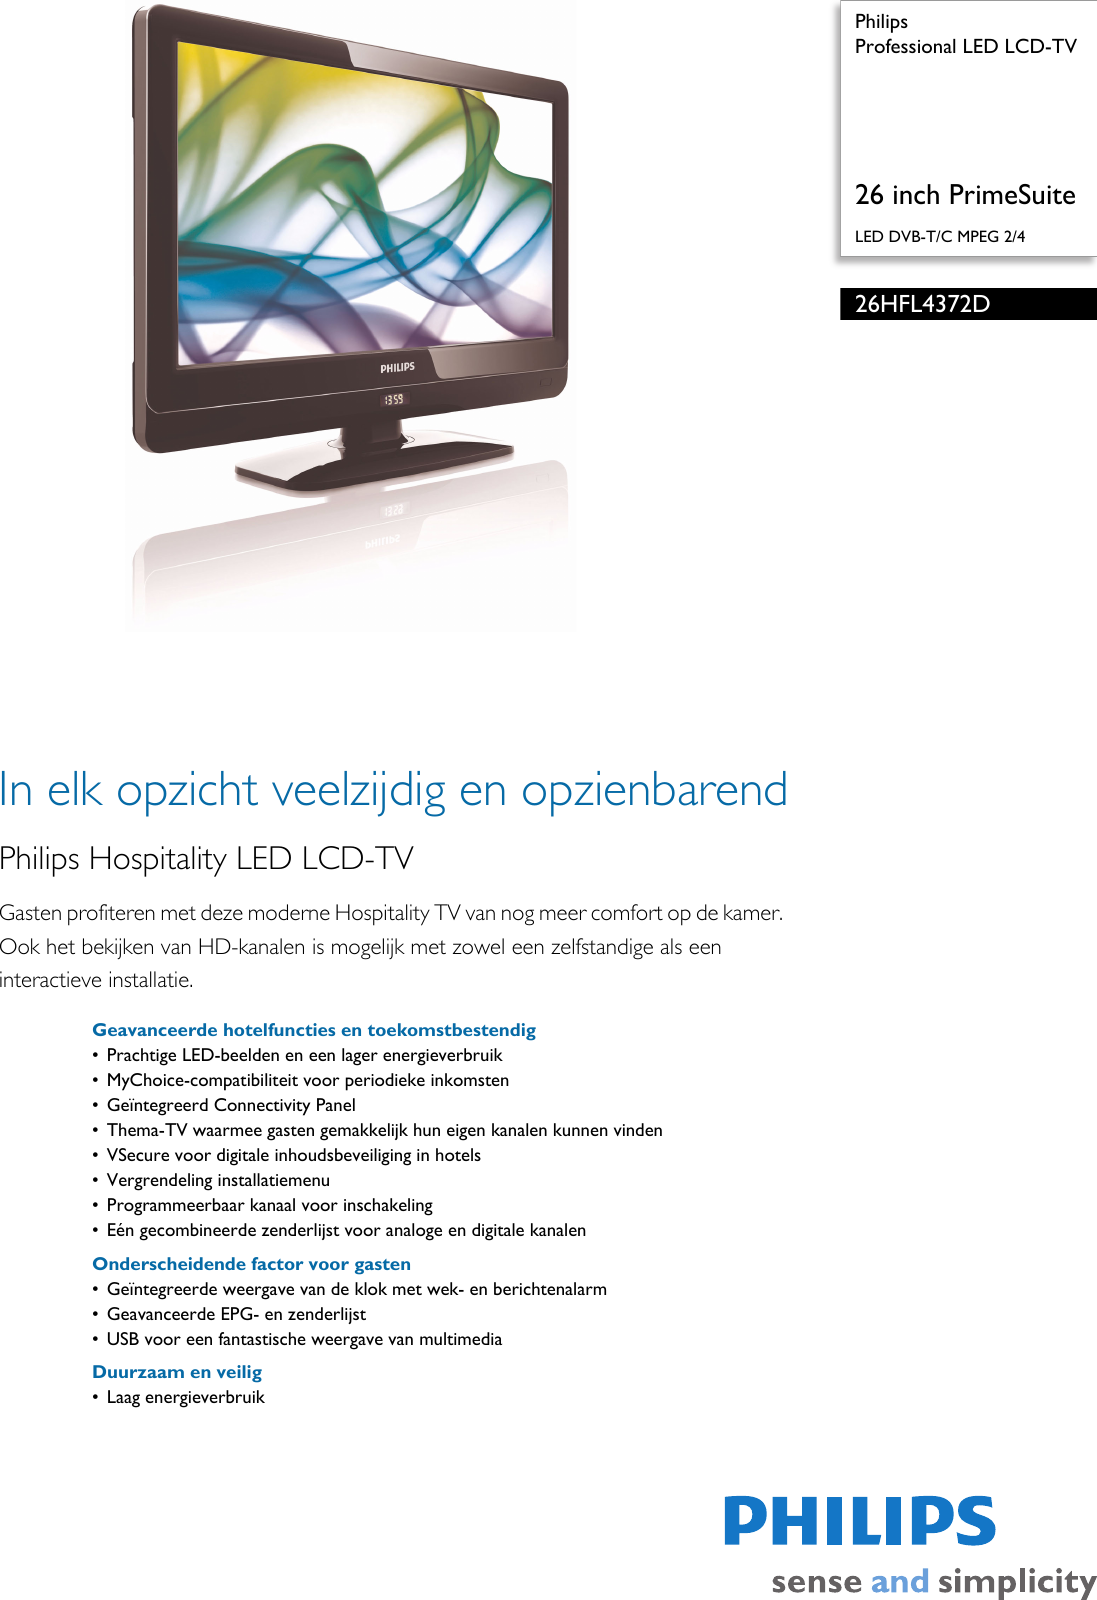 philips 26hfl4372d 10 professional led lcd tv user manual brochure rh usermanual wiki lcd tv user manual samsung lcd tv user manual samsung series 5